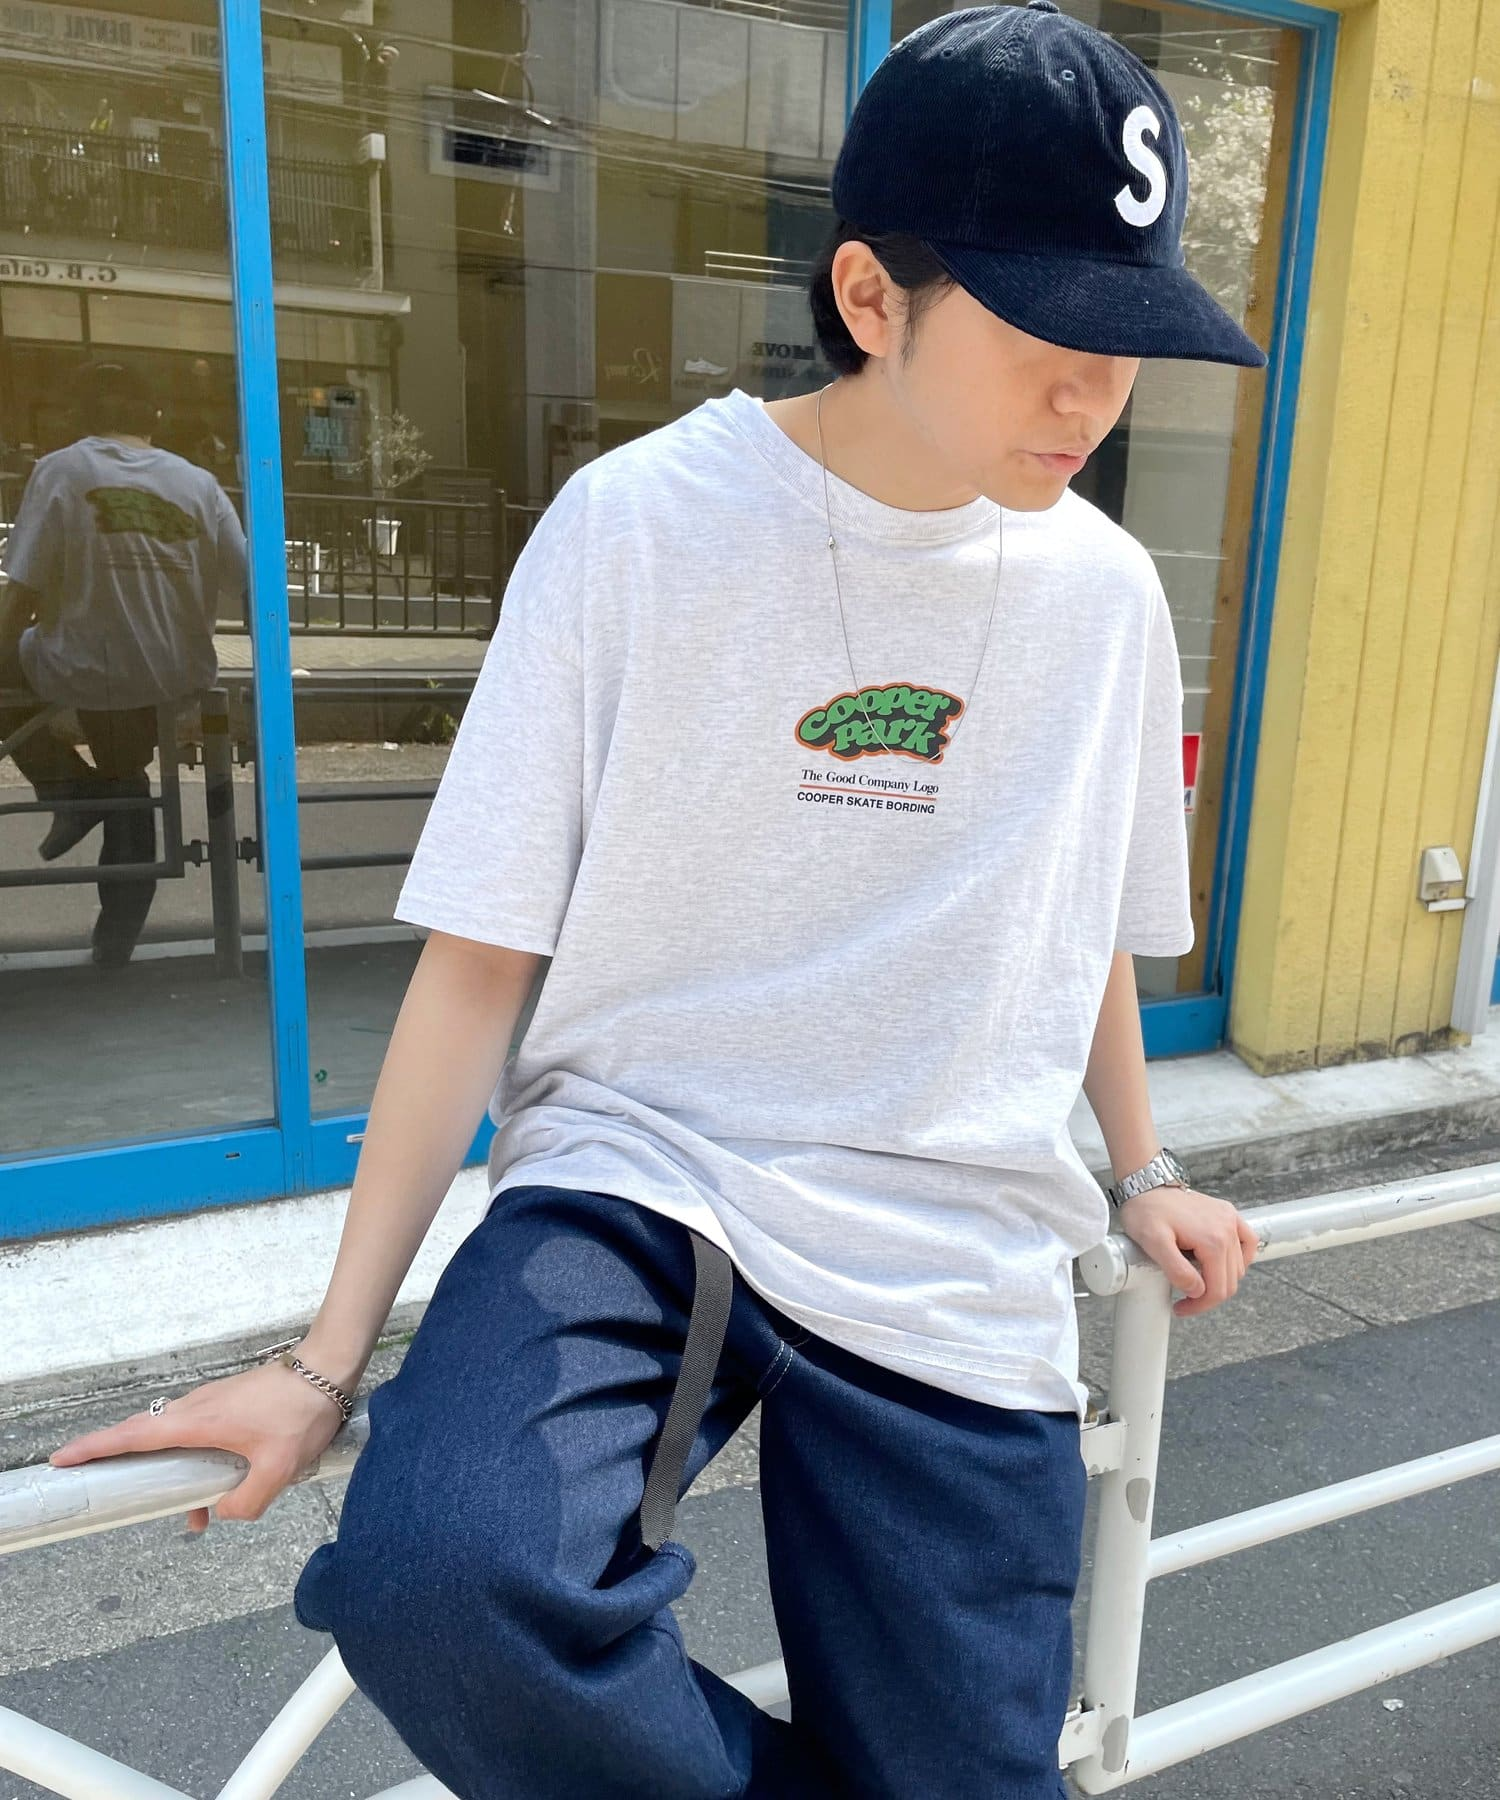 WHO'S WHO gallery(フーズフーギャラリー) COOPERPARK BIG TEE